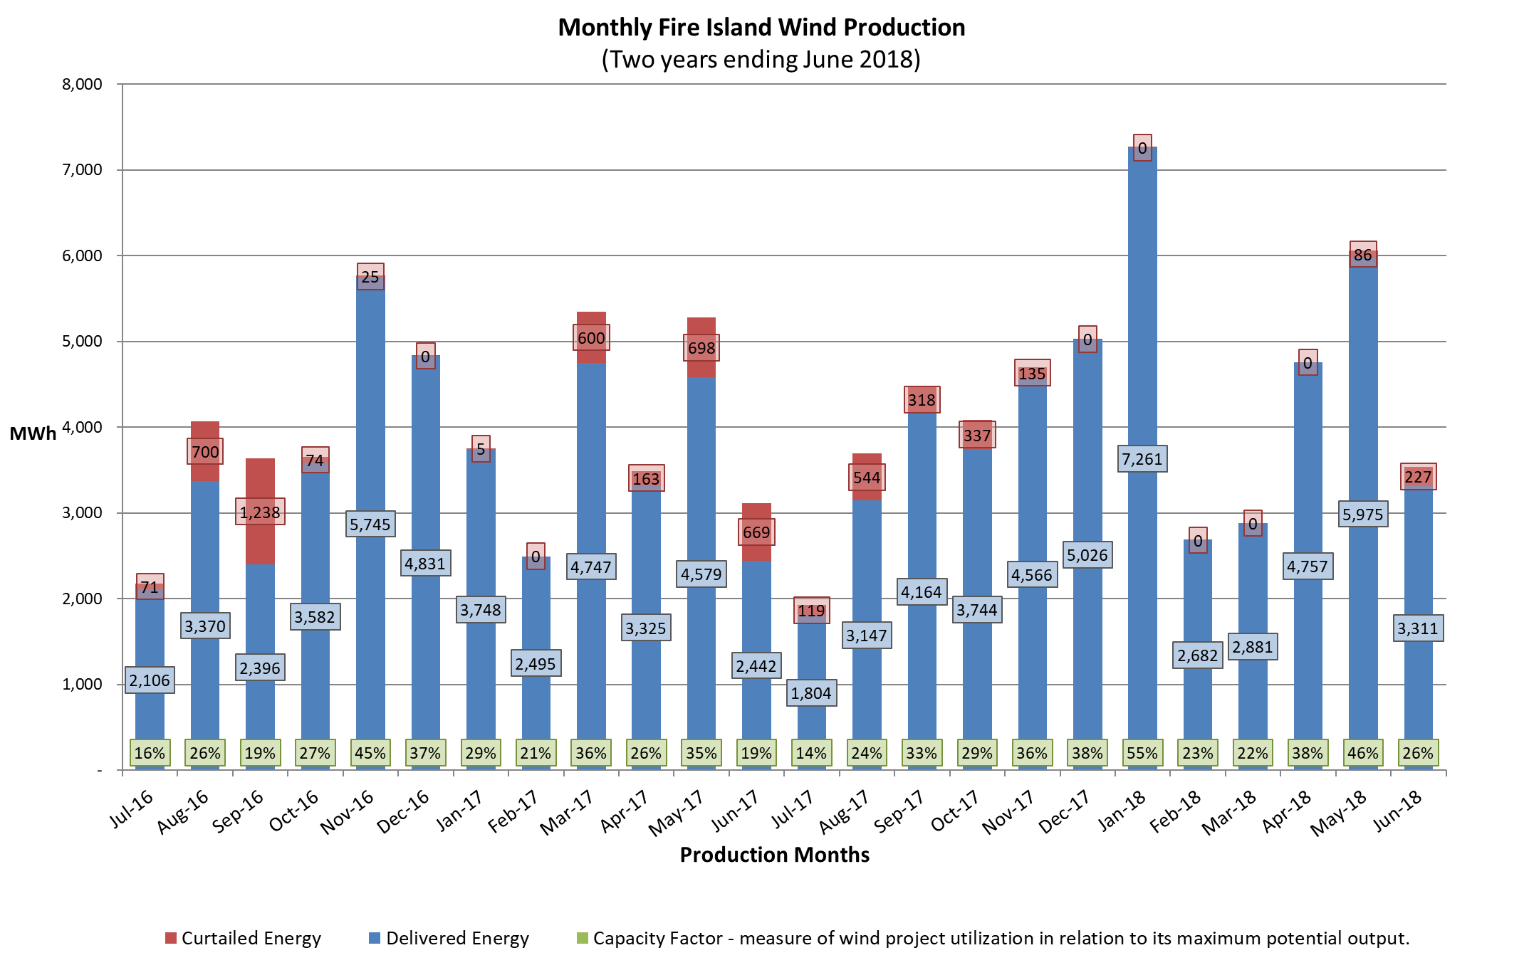 Monthly Fire Island Wind Production graph